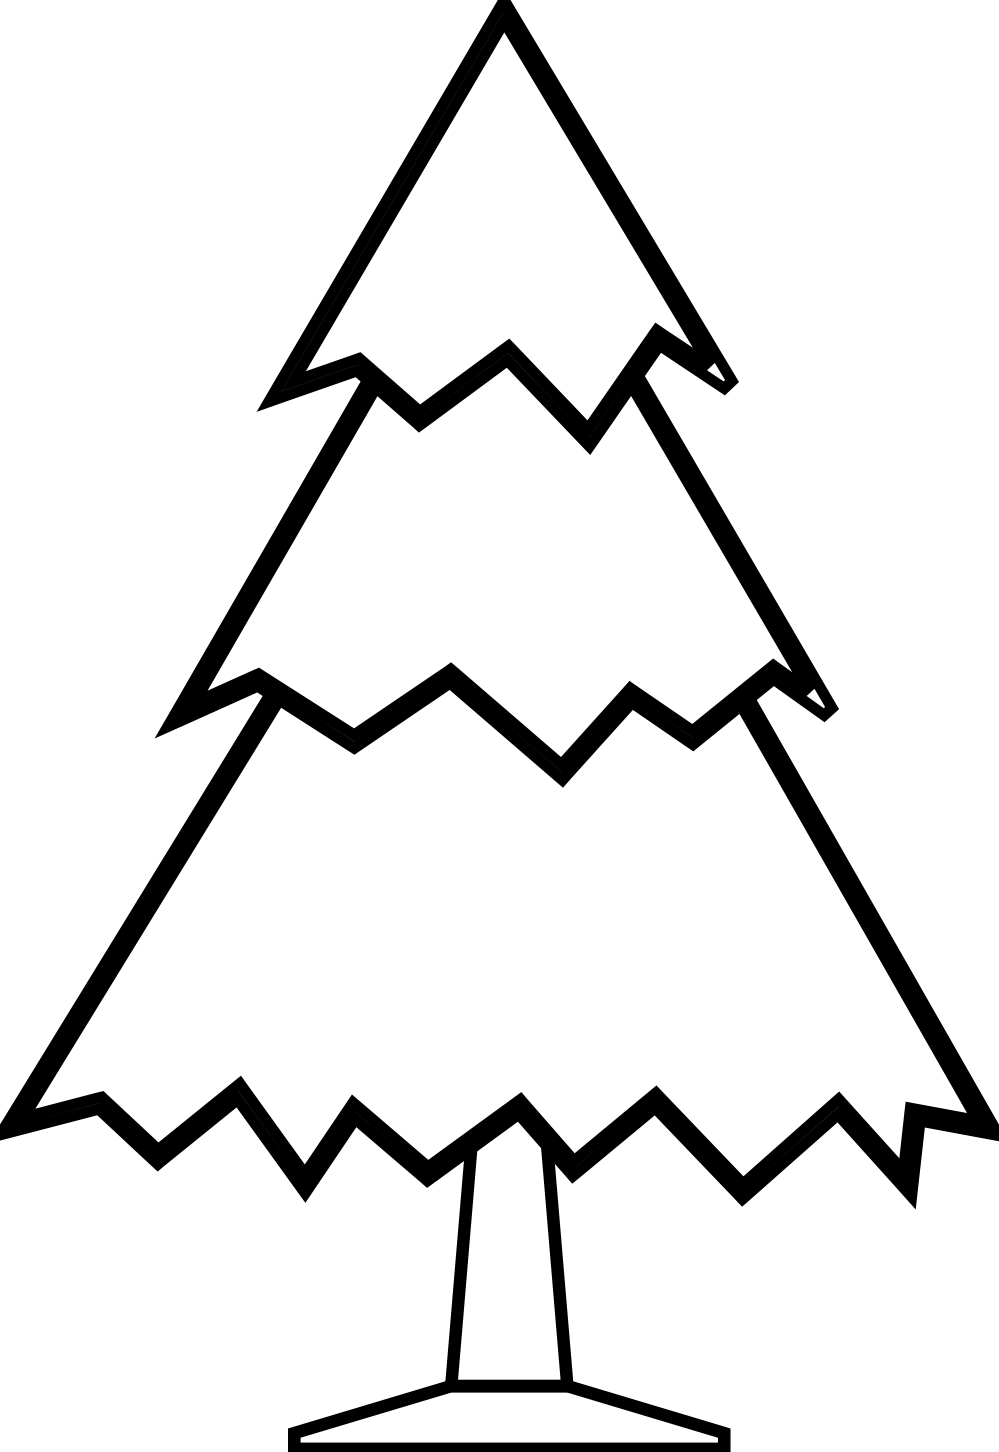 Christmas Ornament Clipart Black And White Clipart Panda Free Clipart Images